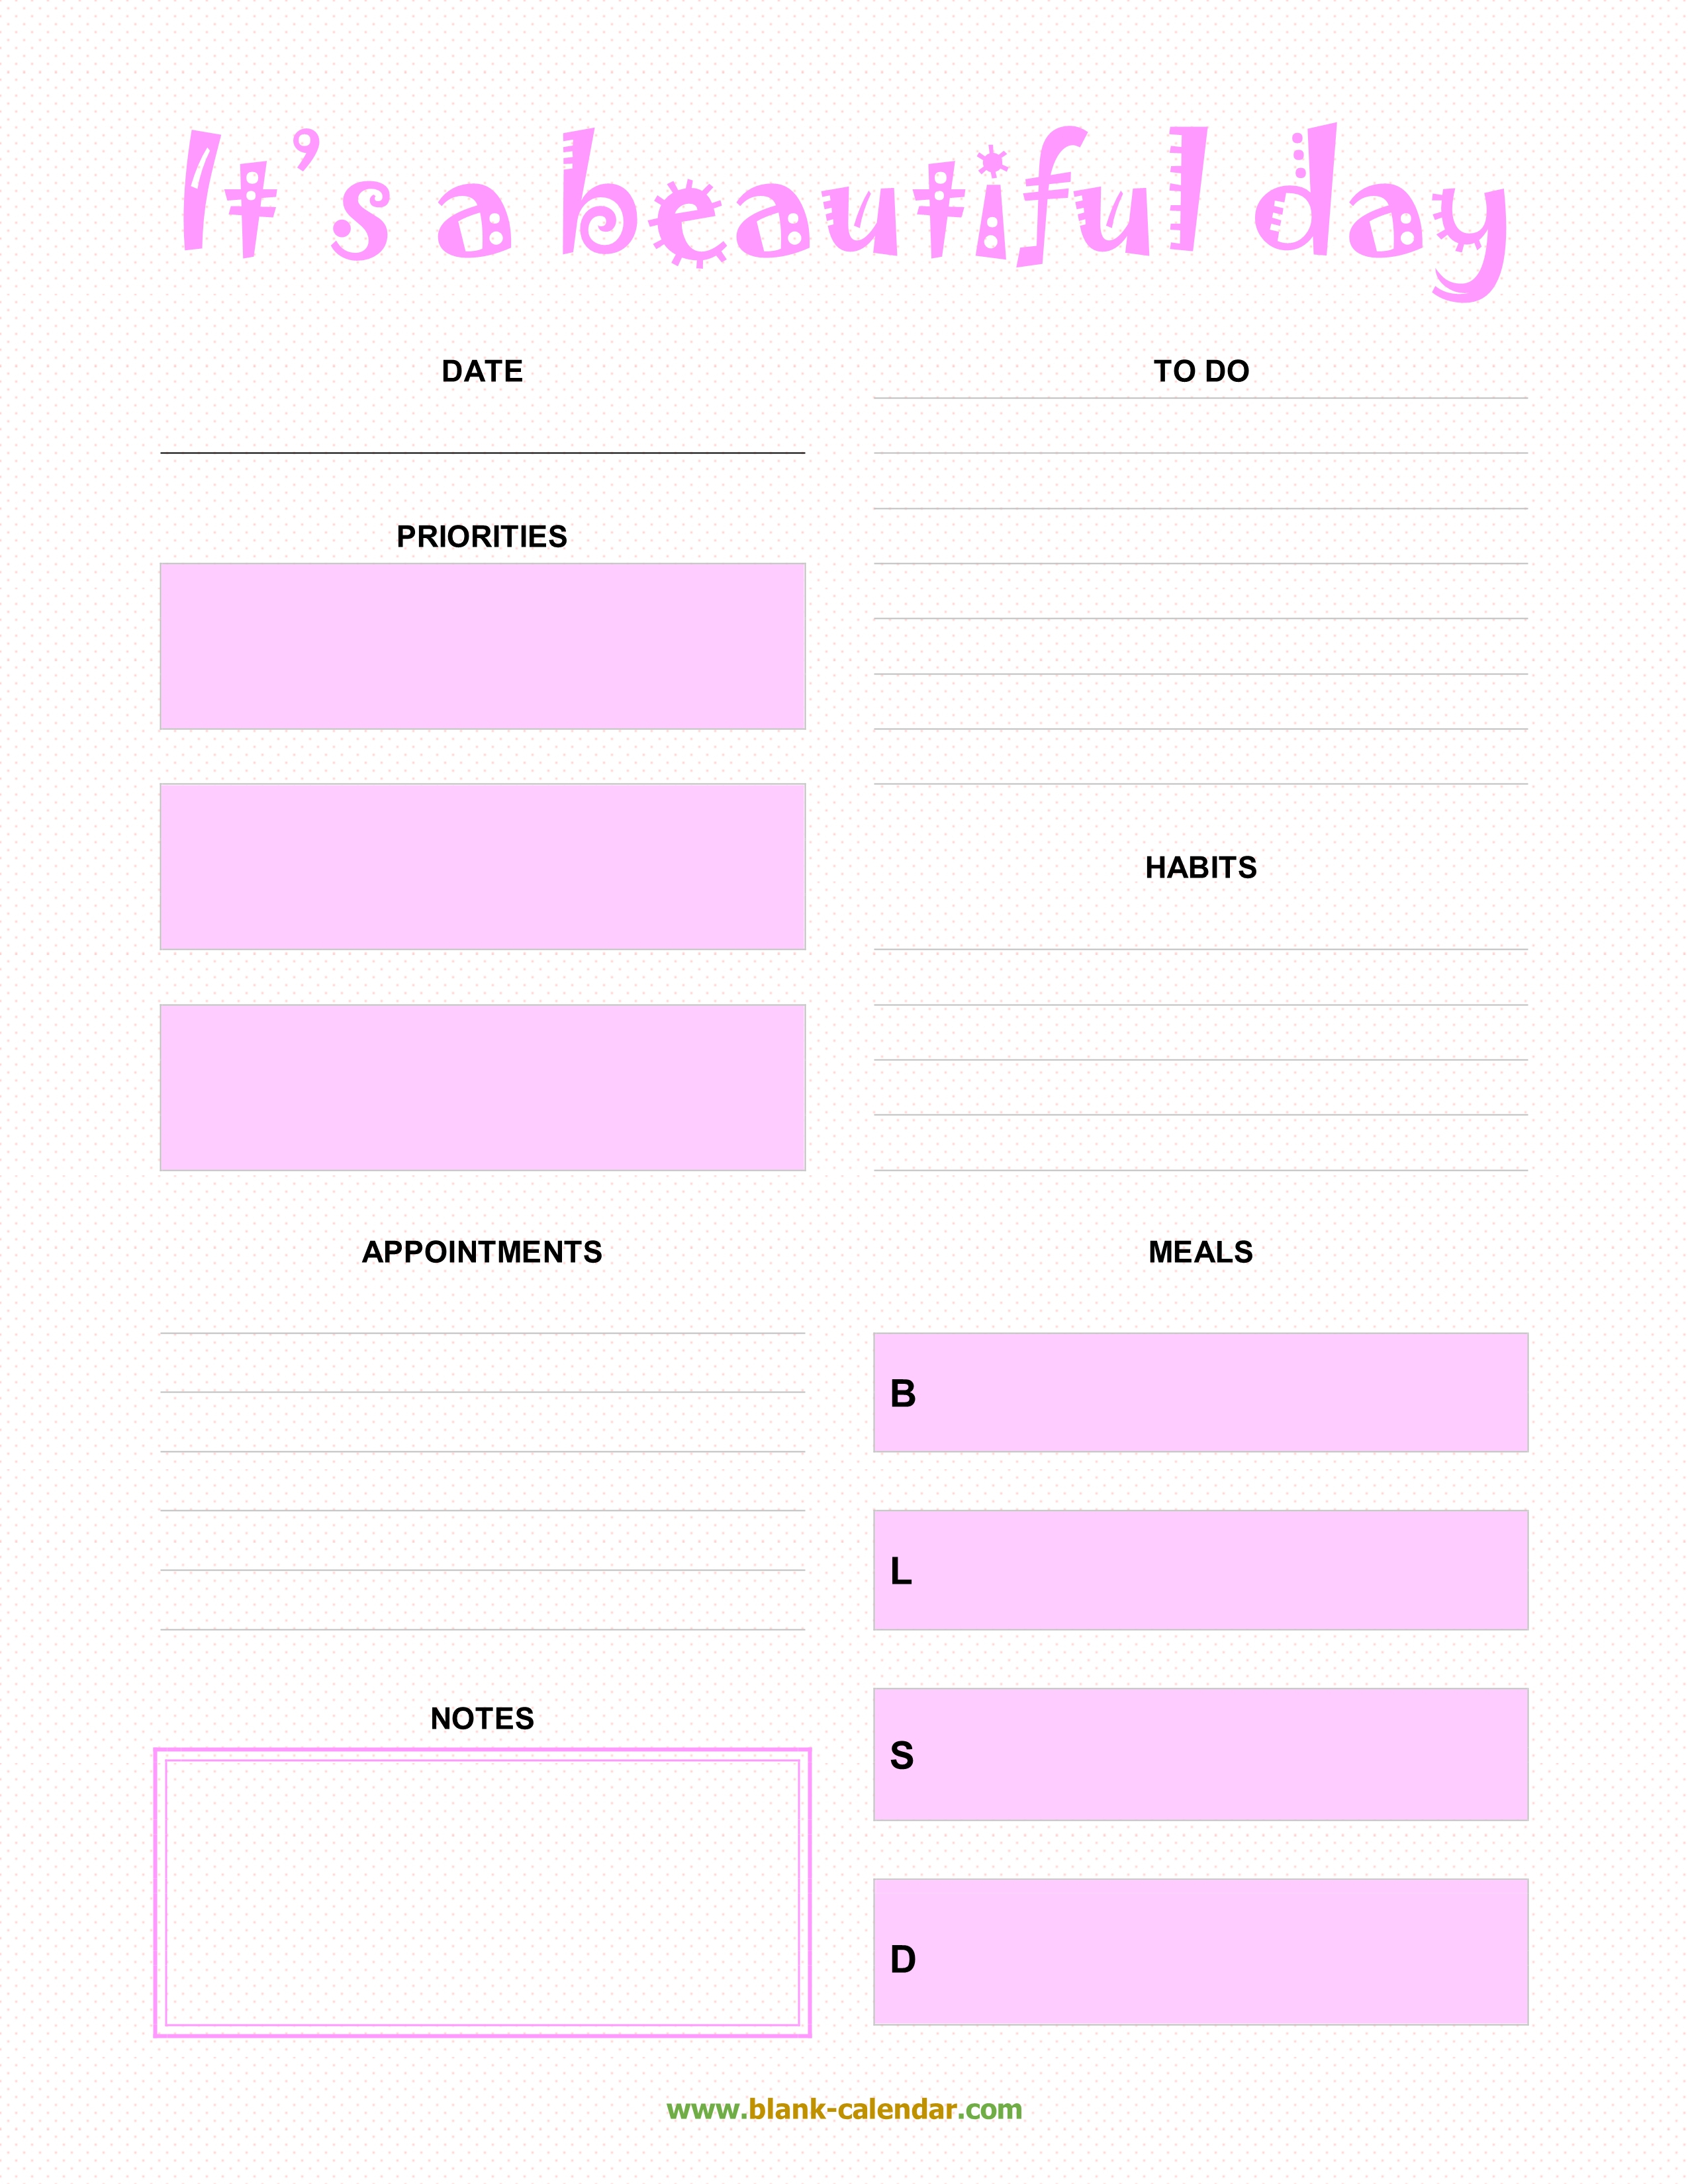 Daily Planner Templates (Word, Excel, Pdf) throughout Daily Planner Templates Pretty